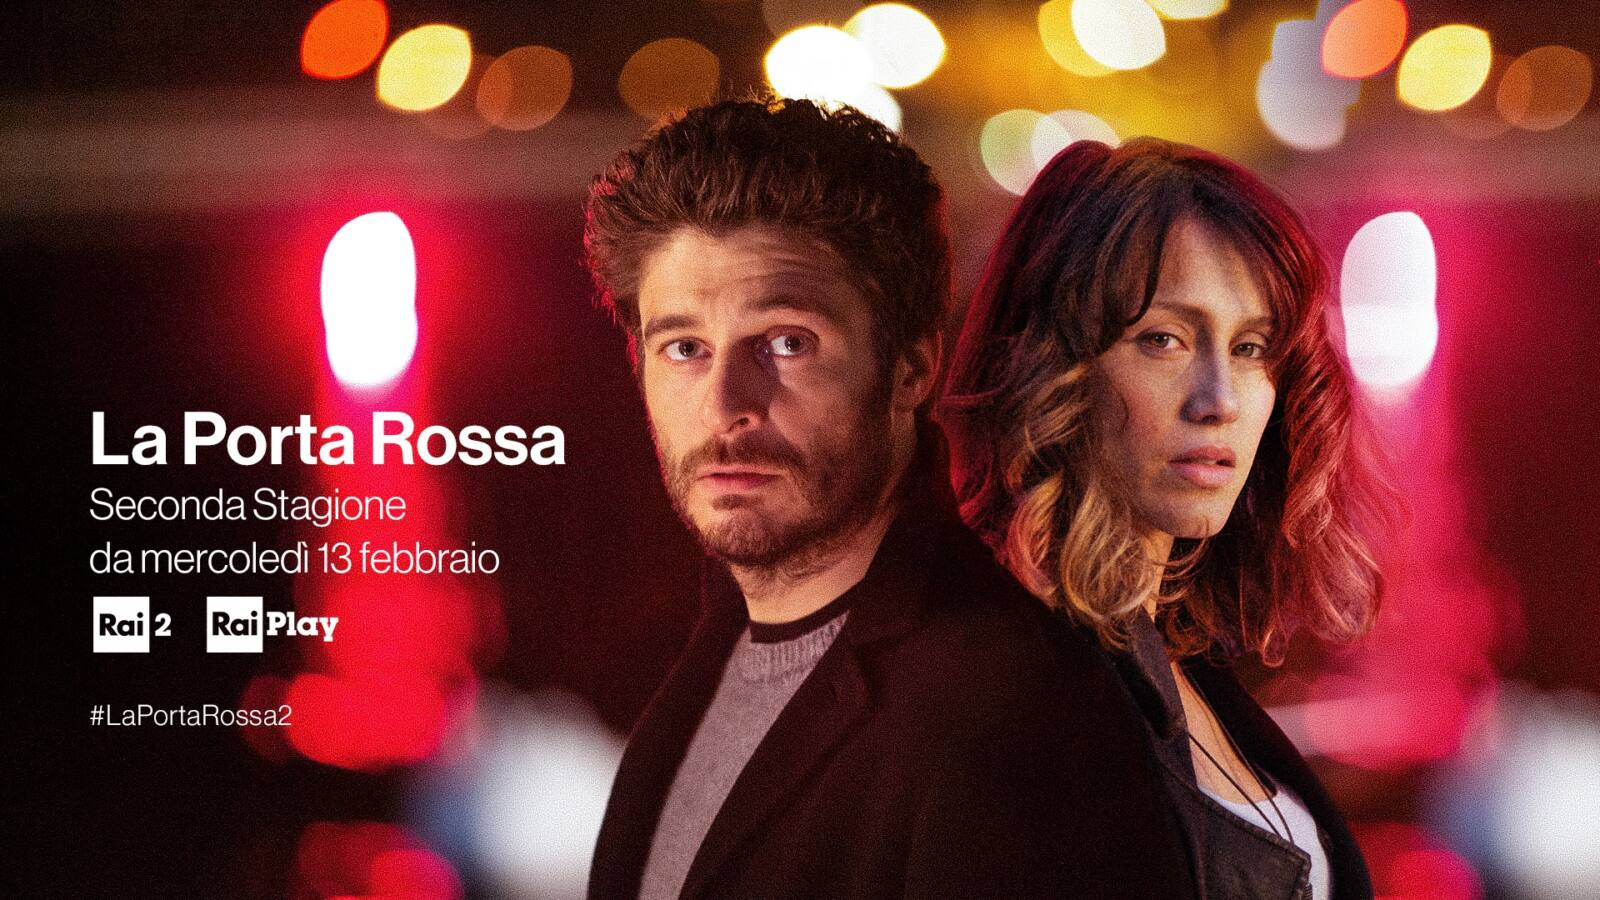 La Porta Rossa 2 Comes Back the 13th of February on RAI